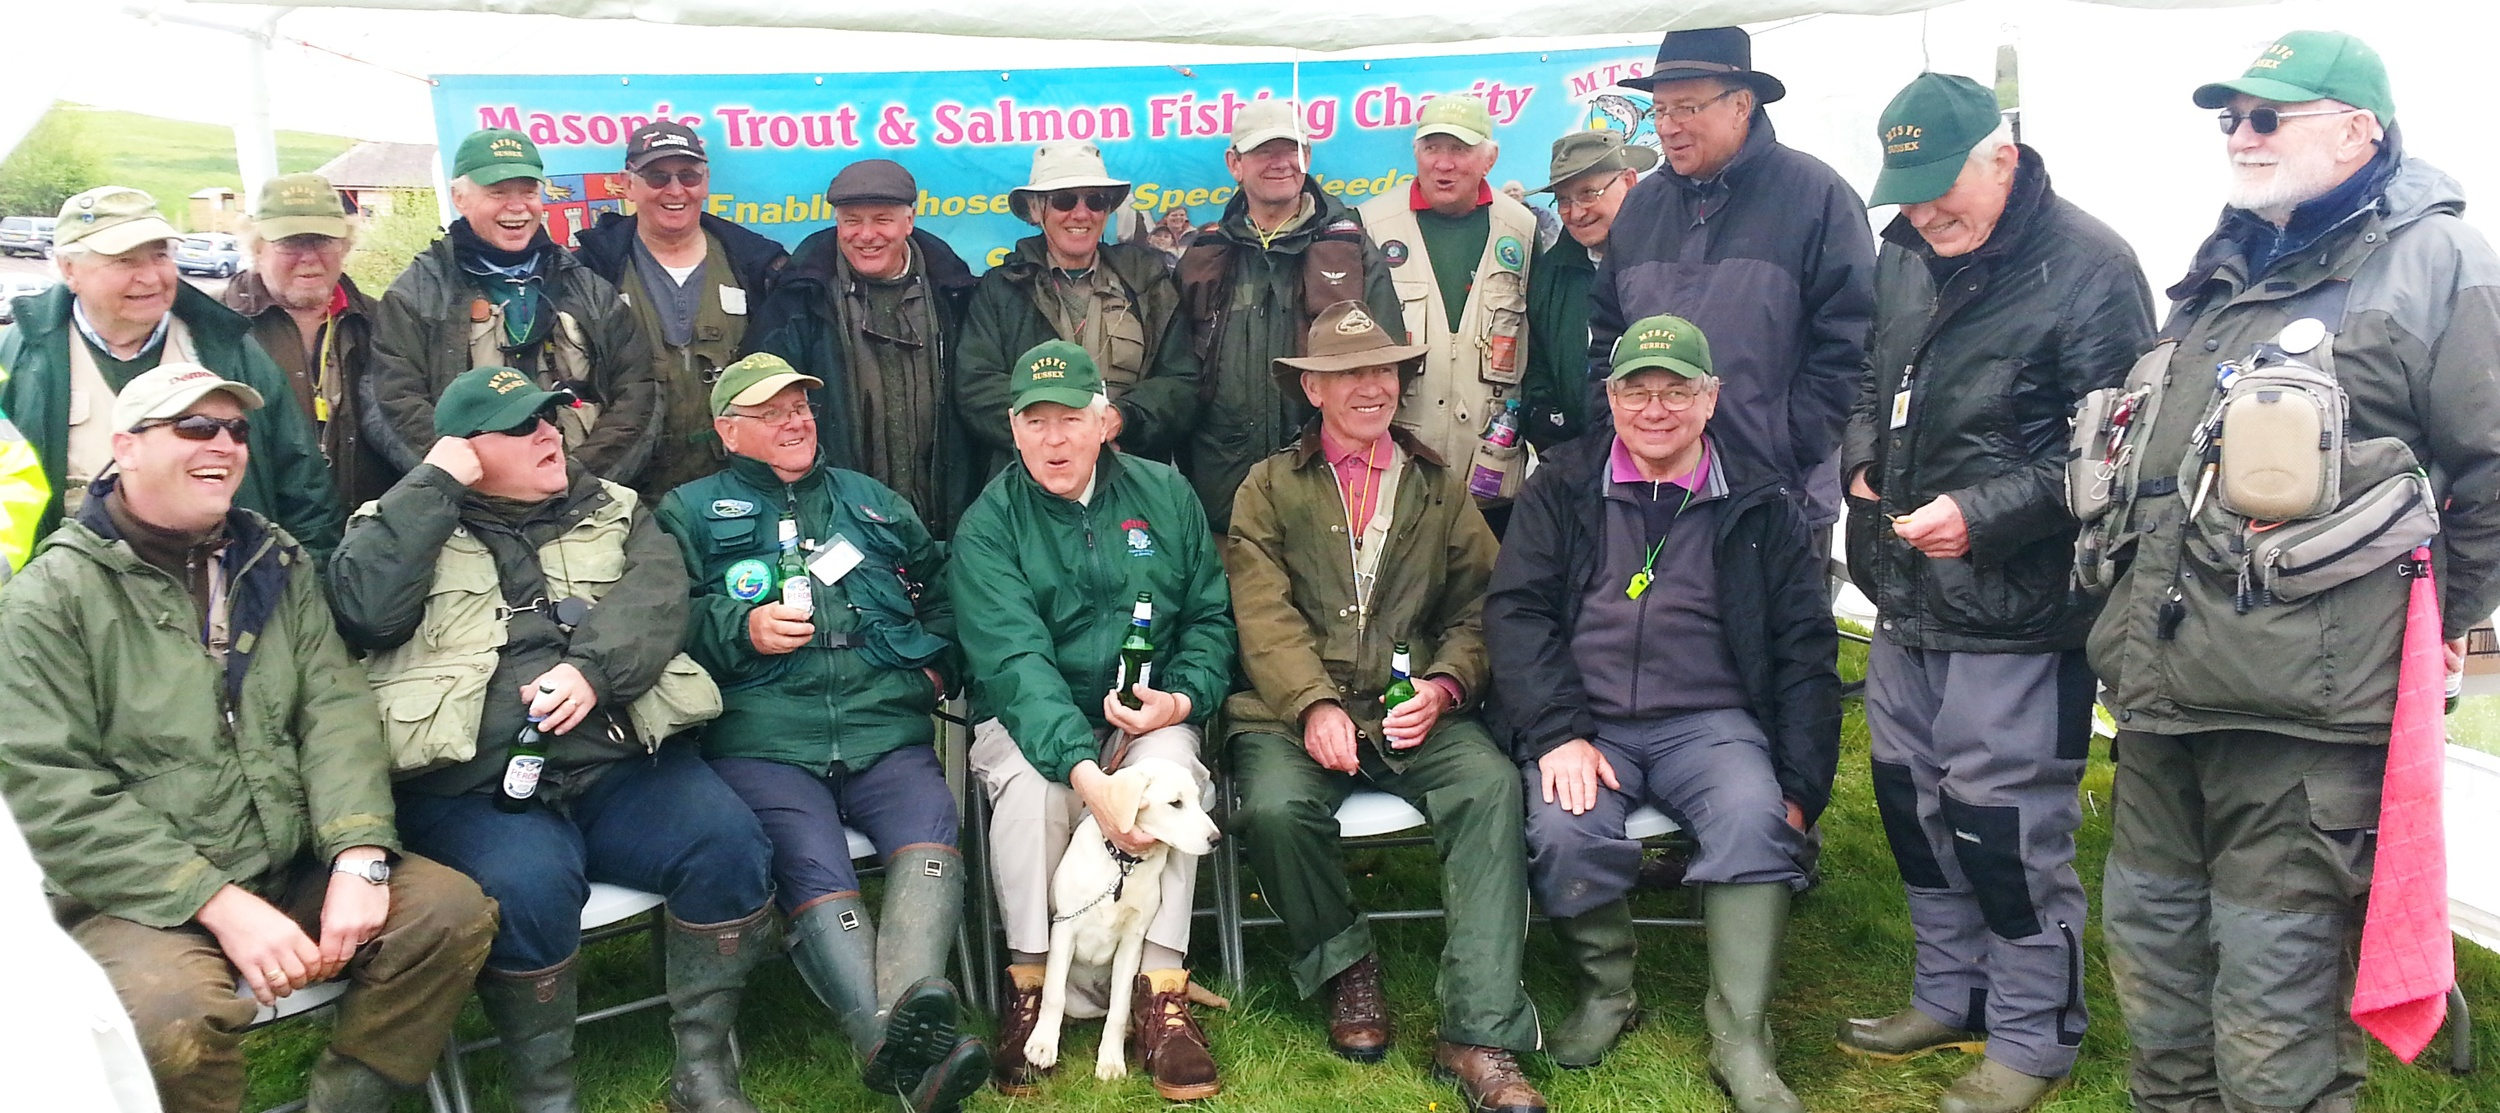 The Masonic Fishing Charity volunteer coaches and helpers